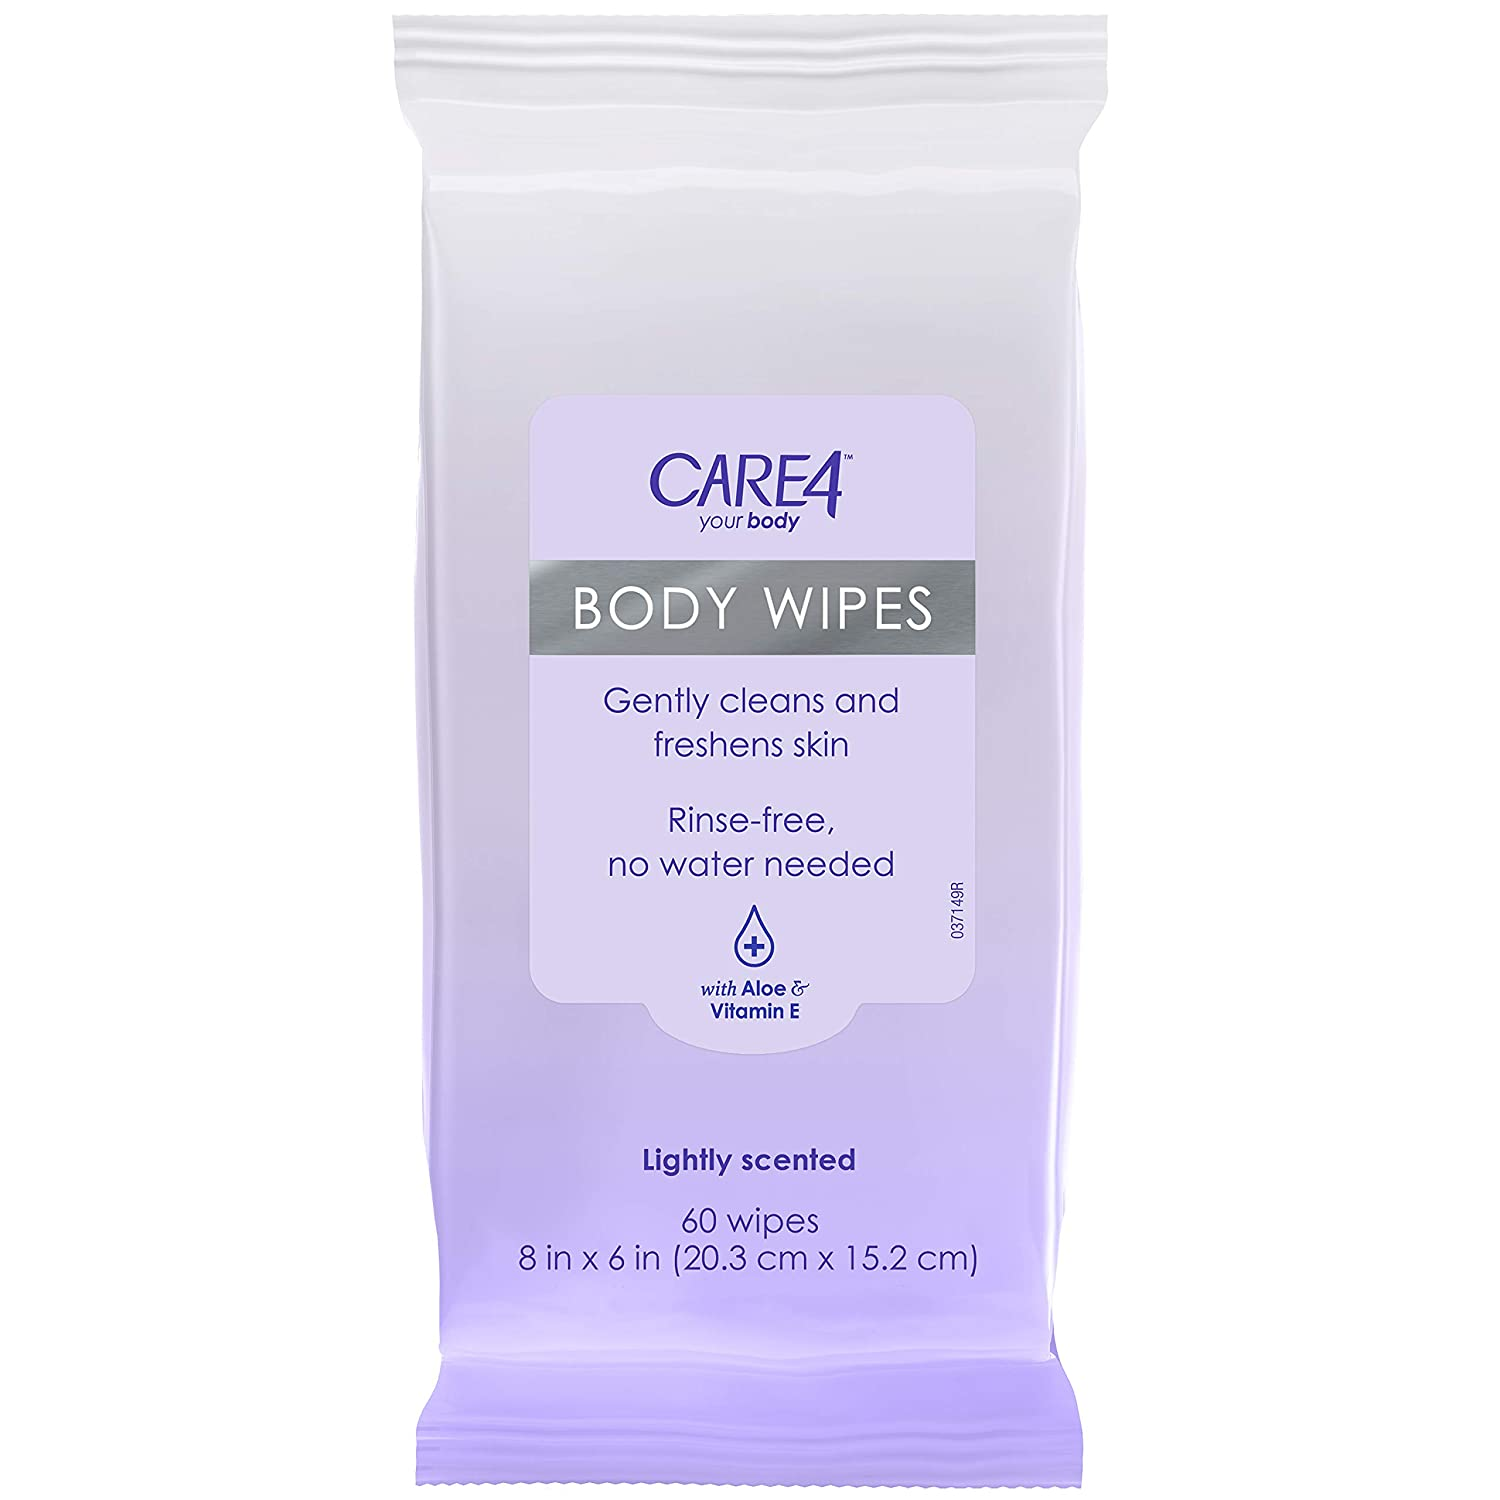 Care4 Body Wipes, Gently cleans & freshens skin - Rinse-free, no water needed - With Aloe & Vitamin E, 60Count